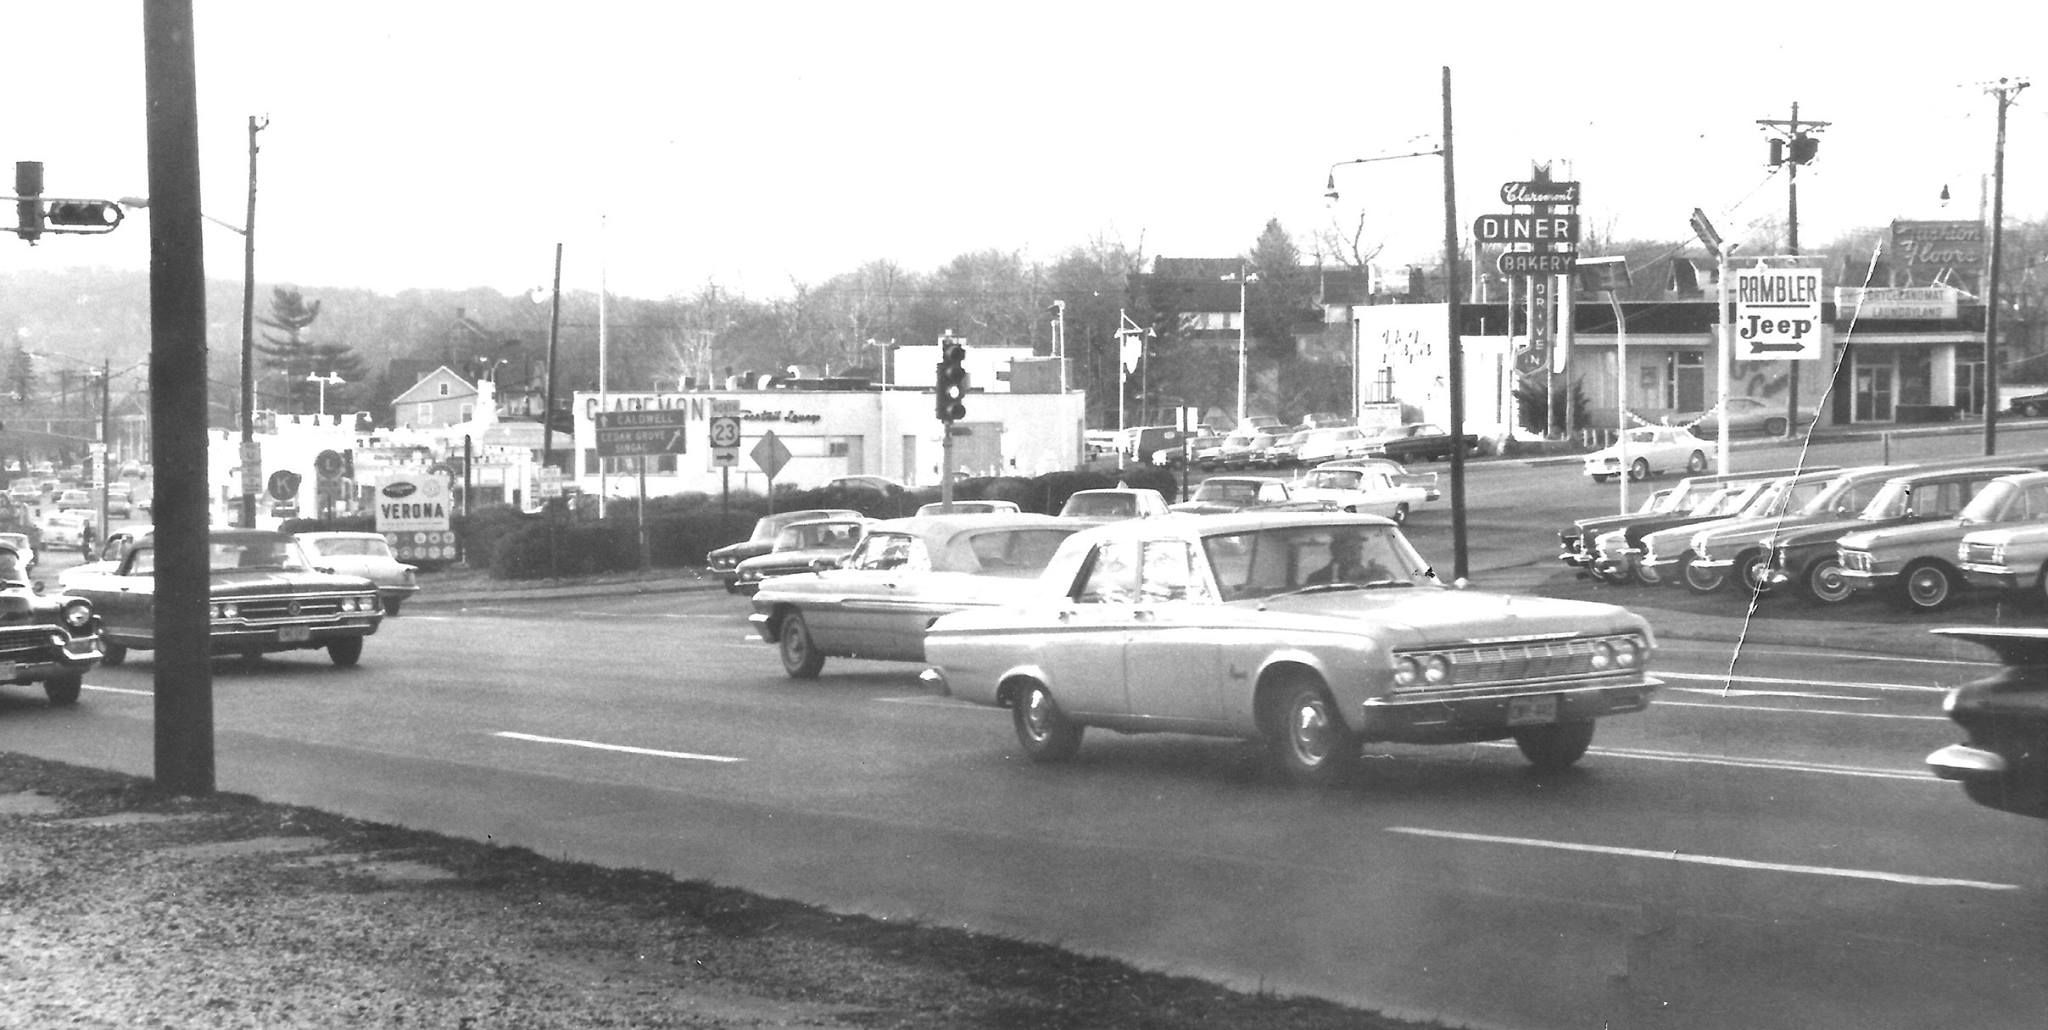 Bloomfield Ave and Route 23 in Verona NJ 1965 Photo